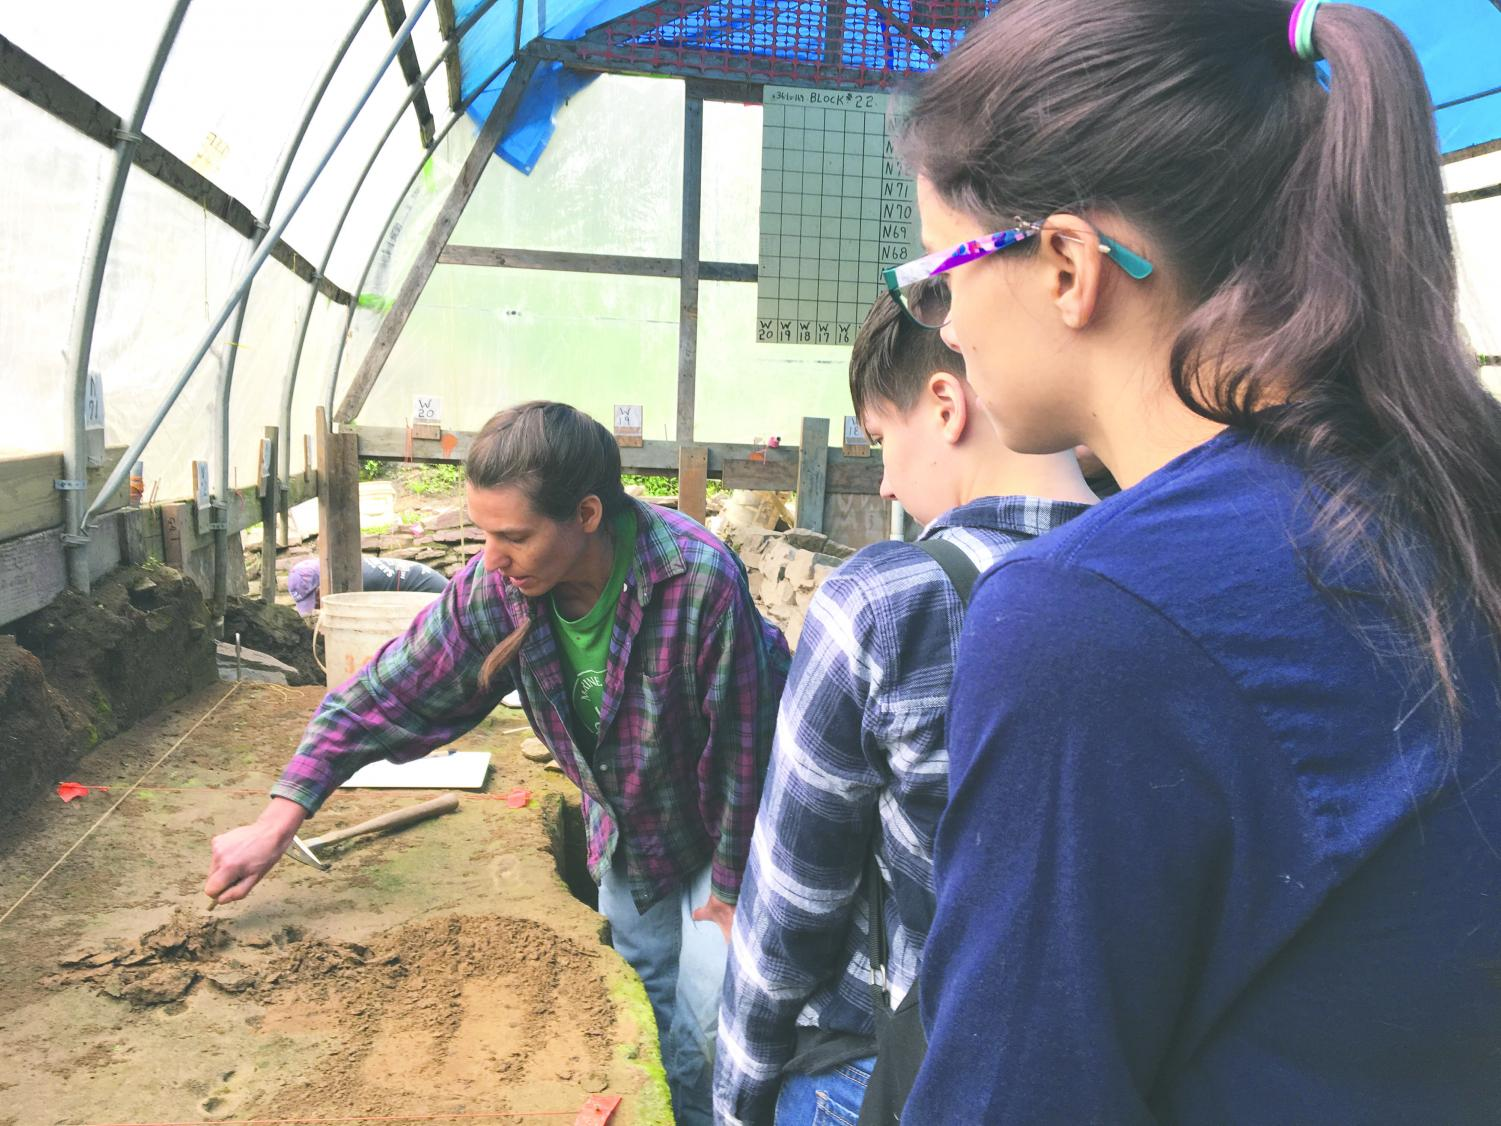 Eileen Blaine and Cece Hornbaker look to learn the methodology of excavation.